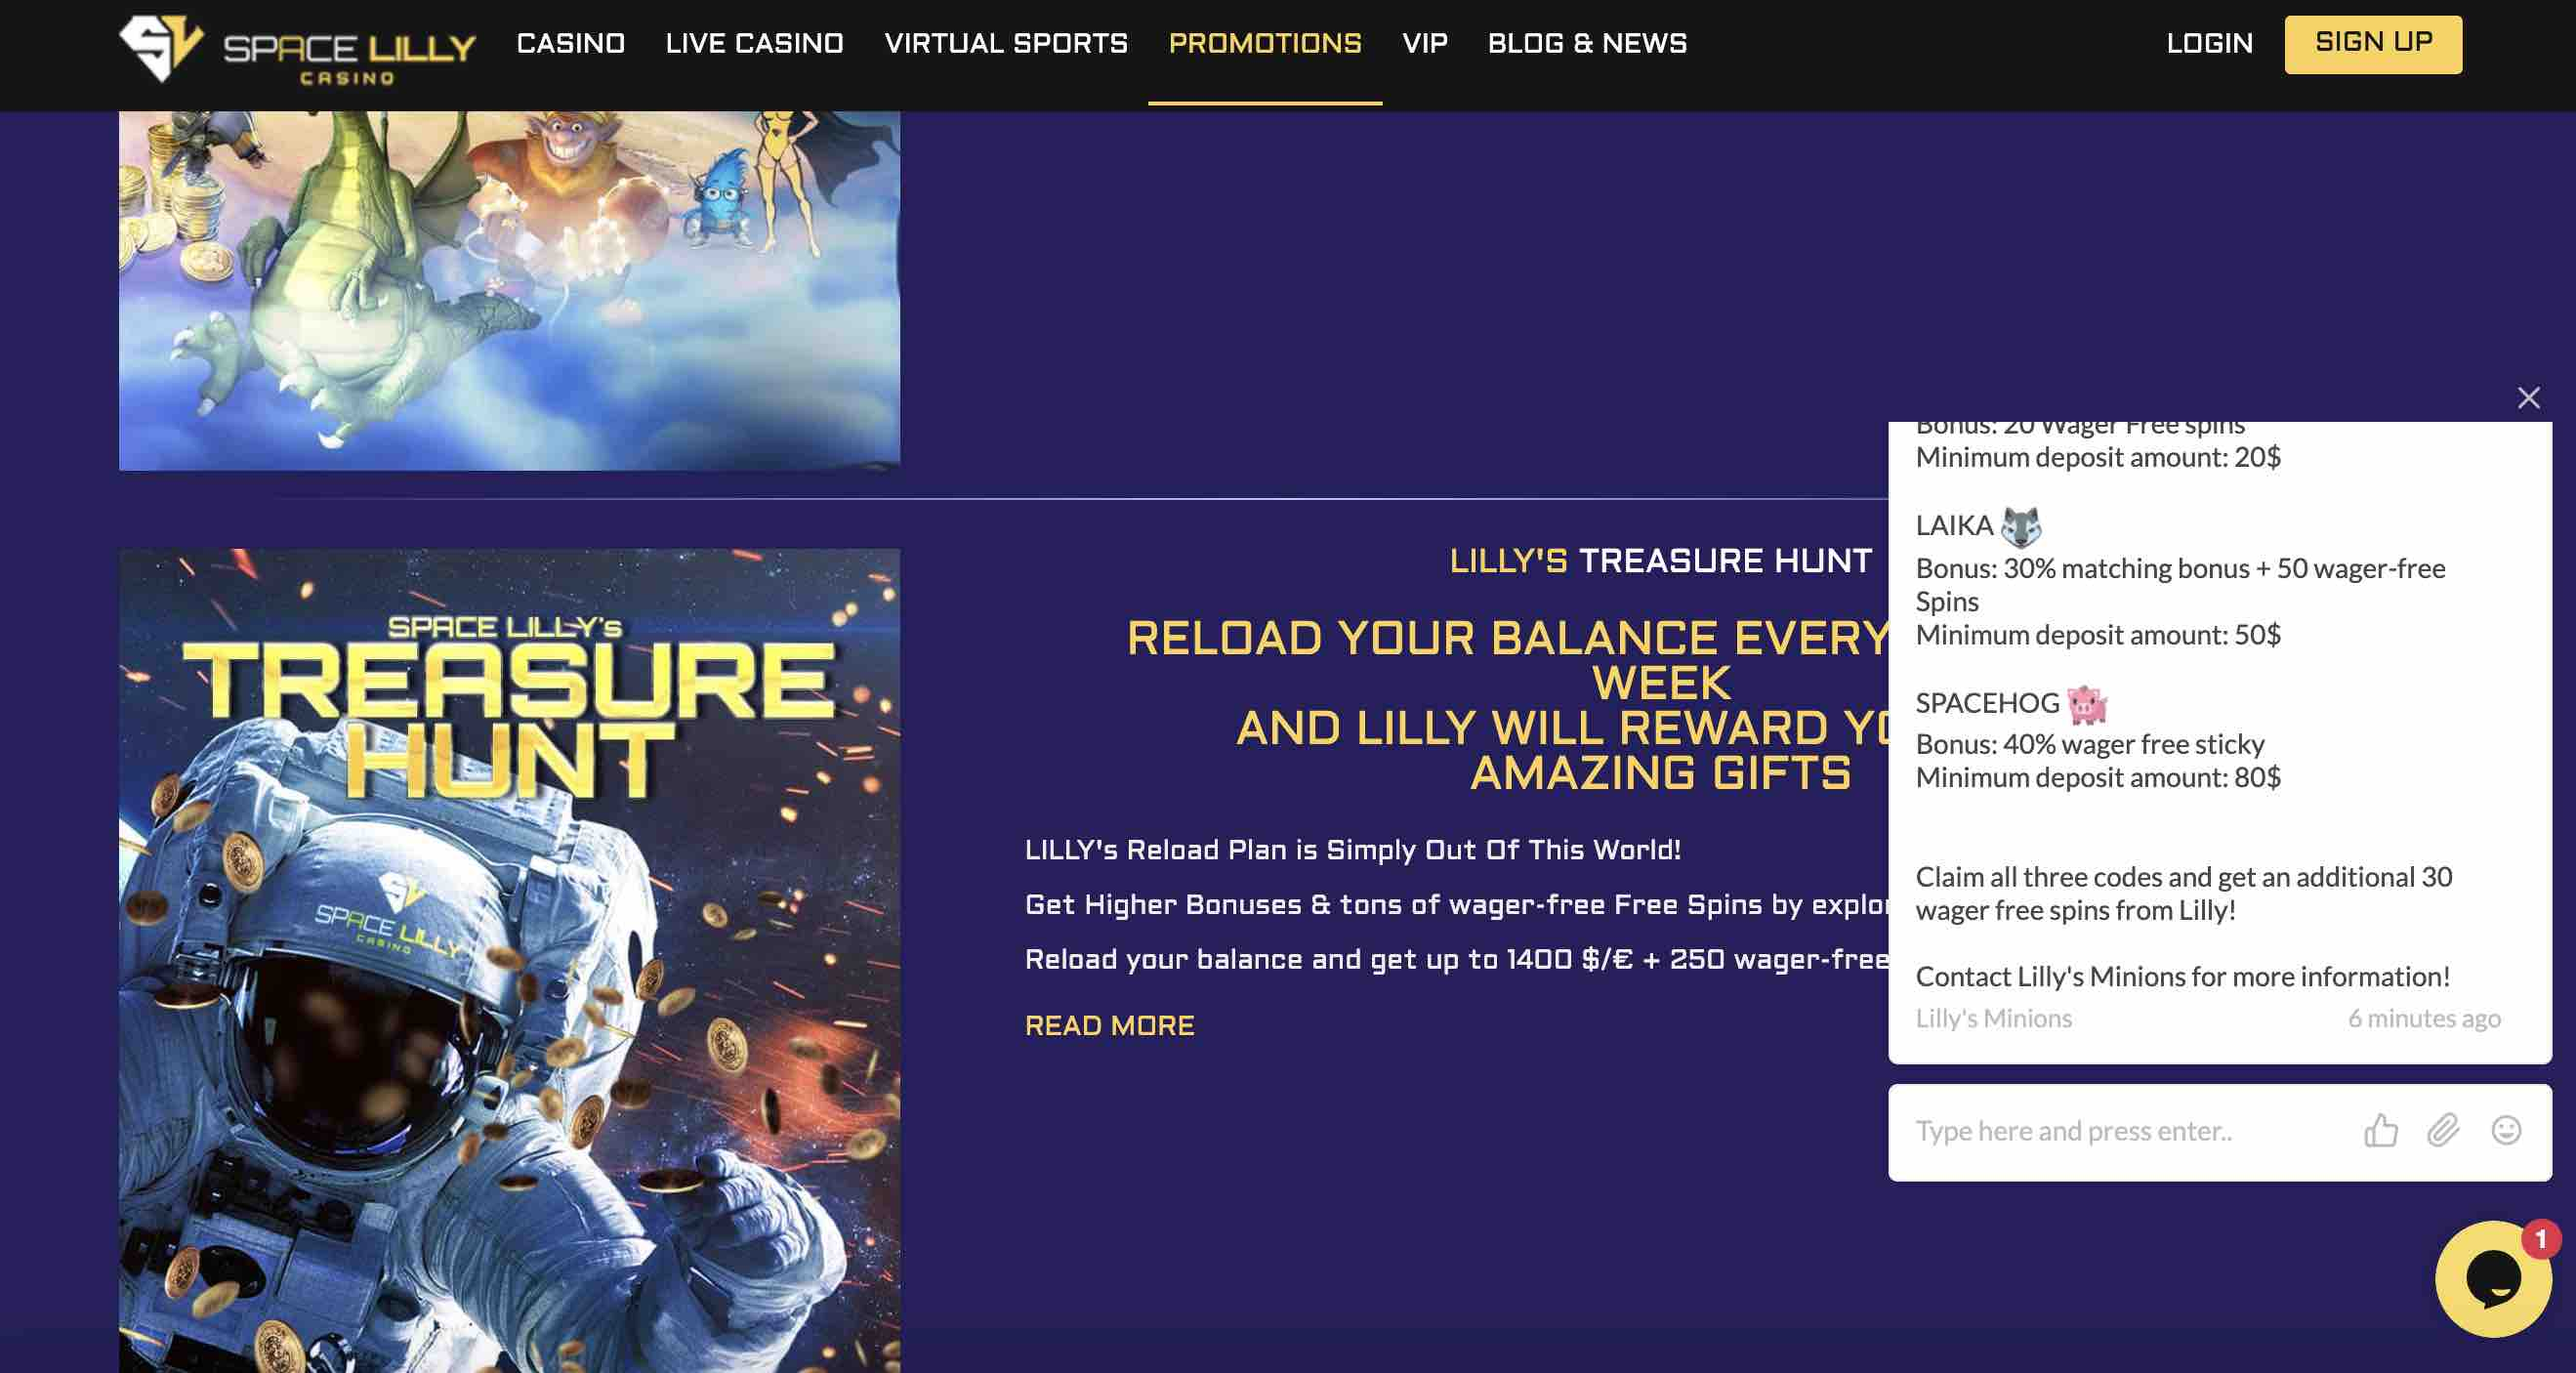 Casino Promotions at Space Lilly Casino